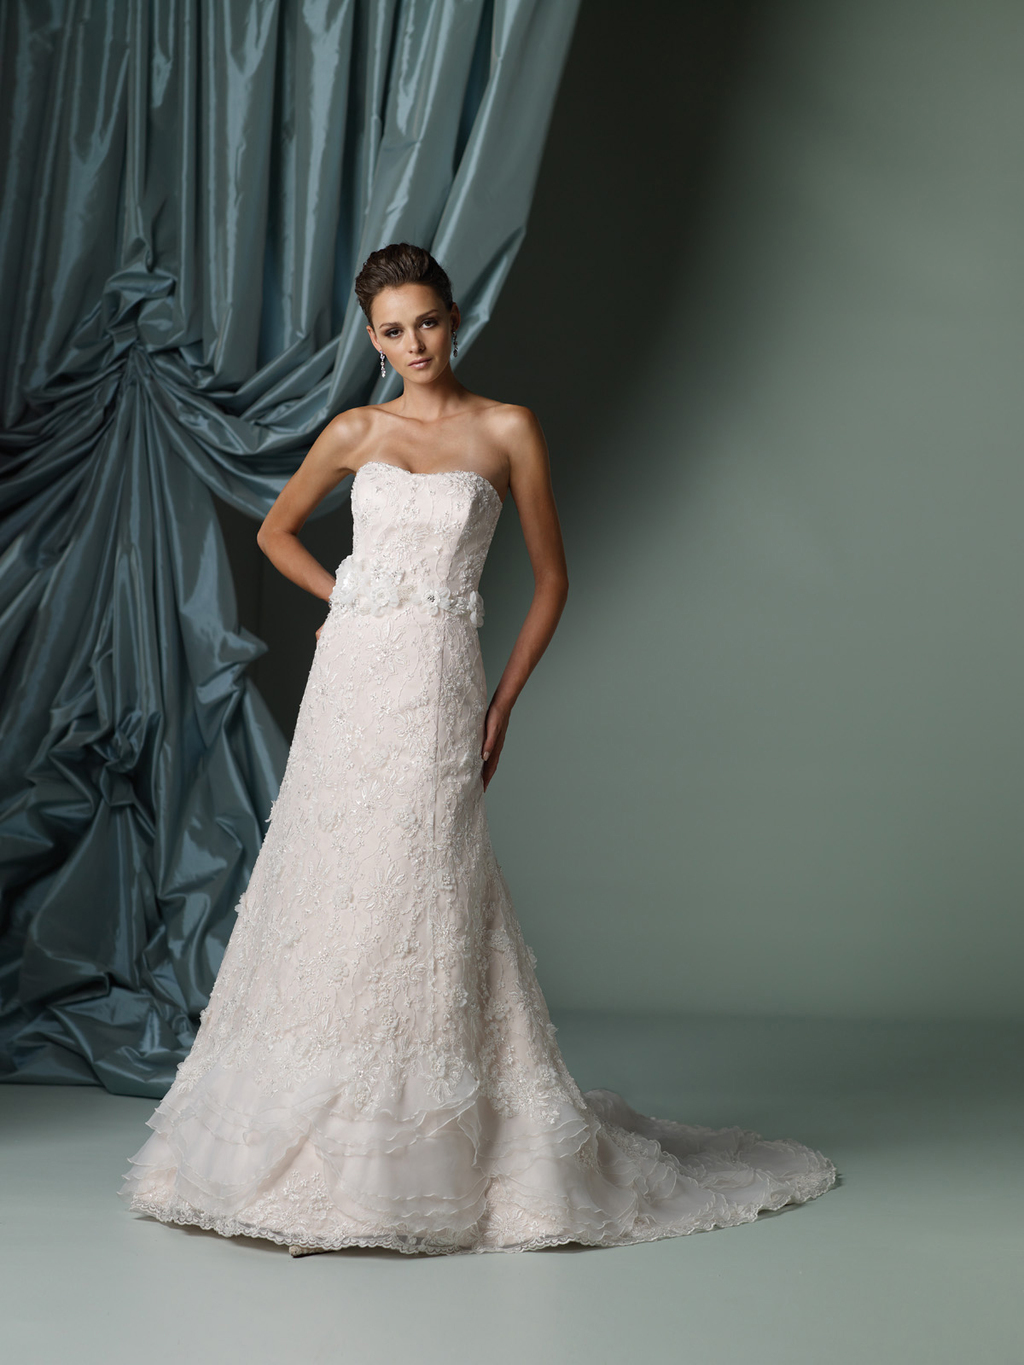 2012-wedding-dress-james-clifford-for-mon-cheri-bridal-gowns-j11230.full